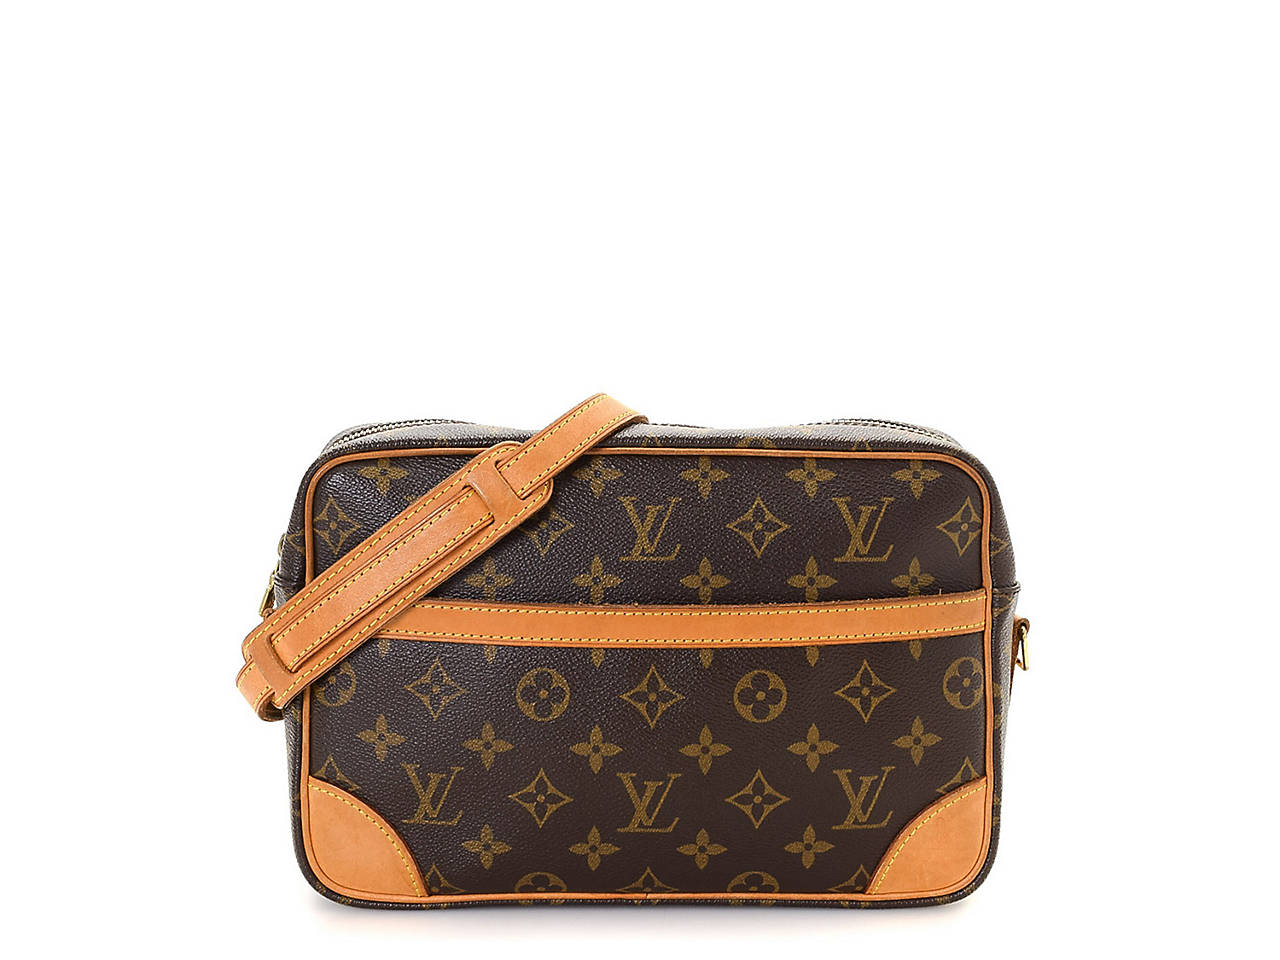 Louis Vuitton - Vintage Luxury Trocadero 27 Crossbody Bag Women s ... 605529635eb48